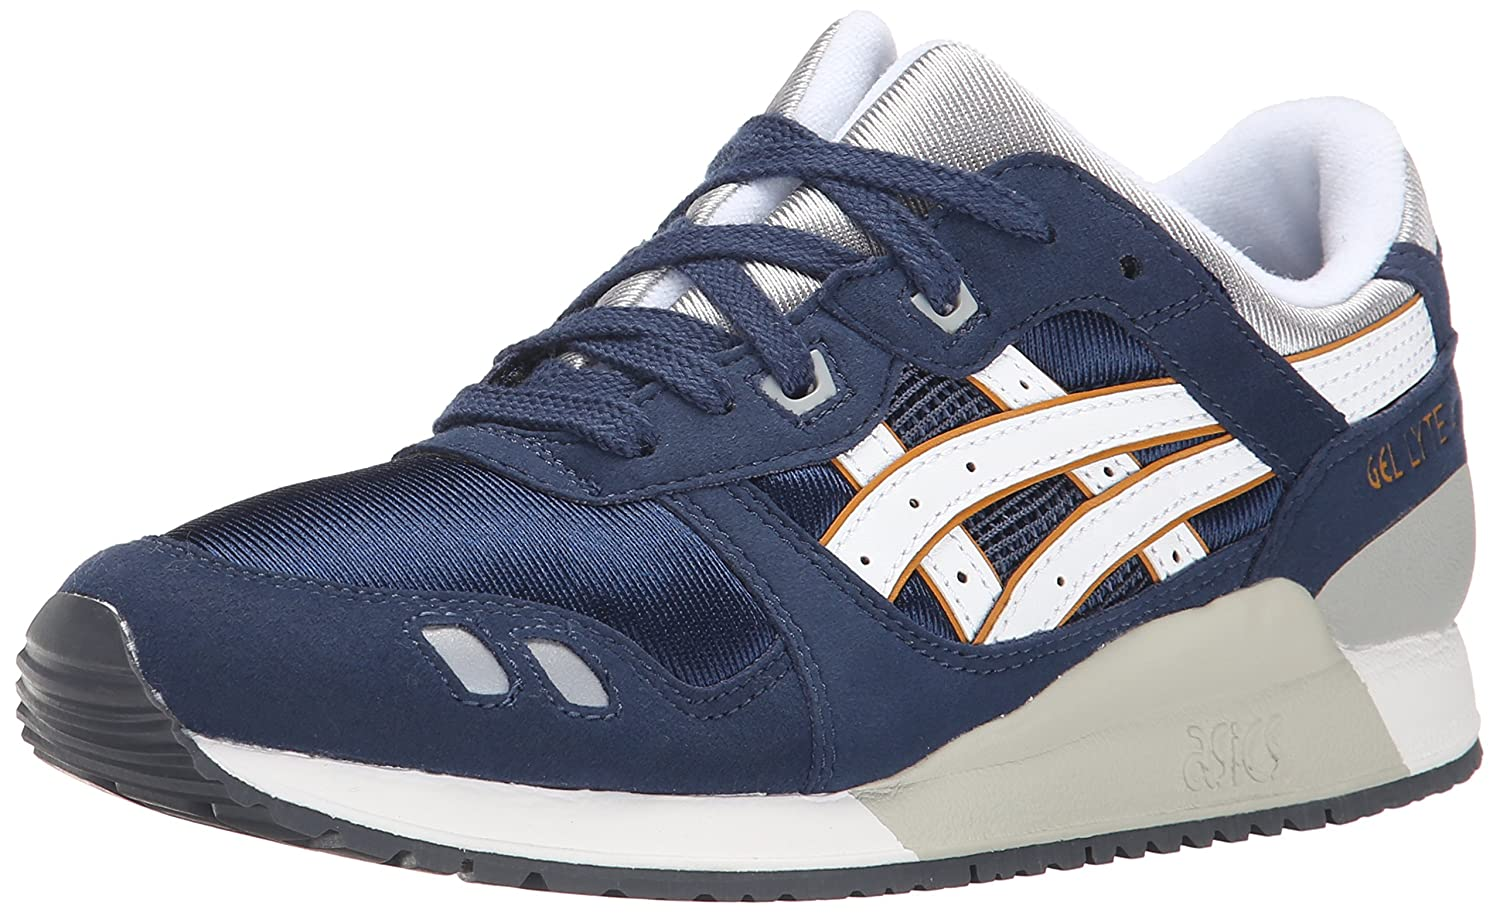 best loved 0167f c4f90 Asics Youths Gel - Lyte III Navy White Mesh Trainers 40 EU ...